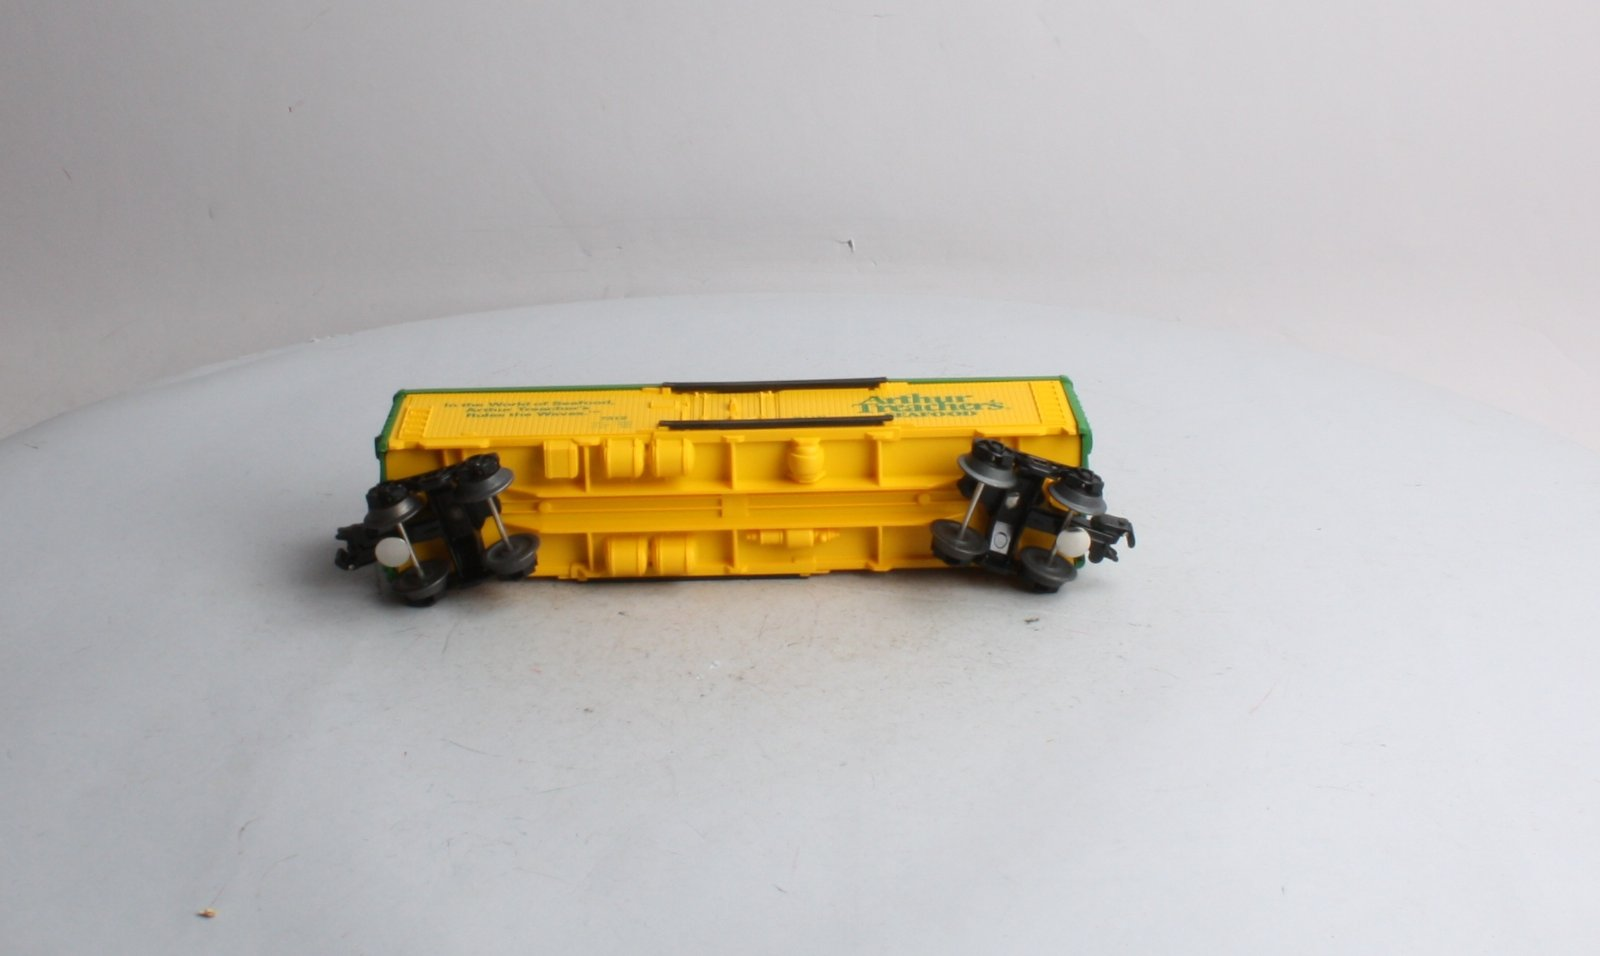 Buy Lionel 6-7512 Arthur Treacher's Refrigerator Car